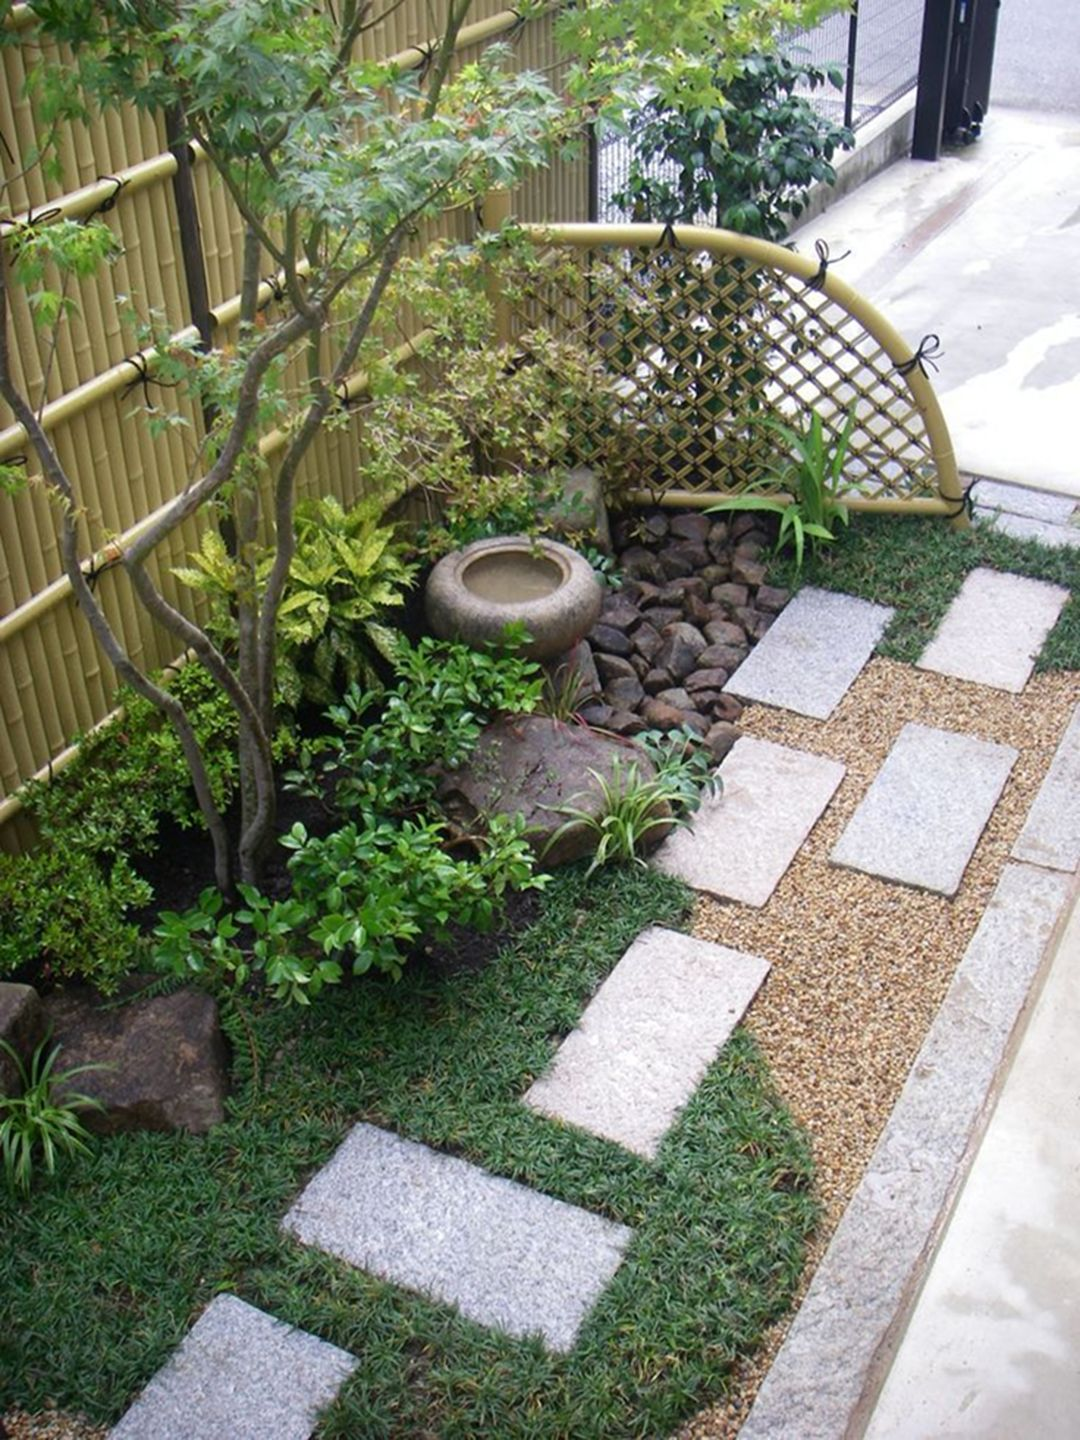 35 incredible small backyard zen garden ideas for relax - Japanese garden ideas for small spaces ...